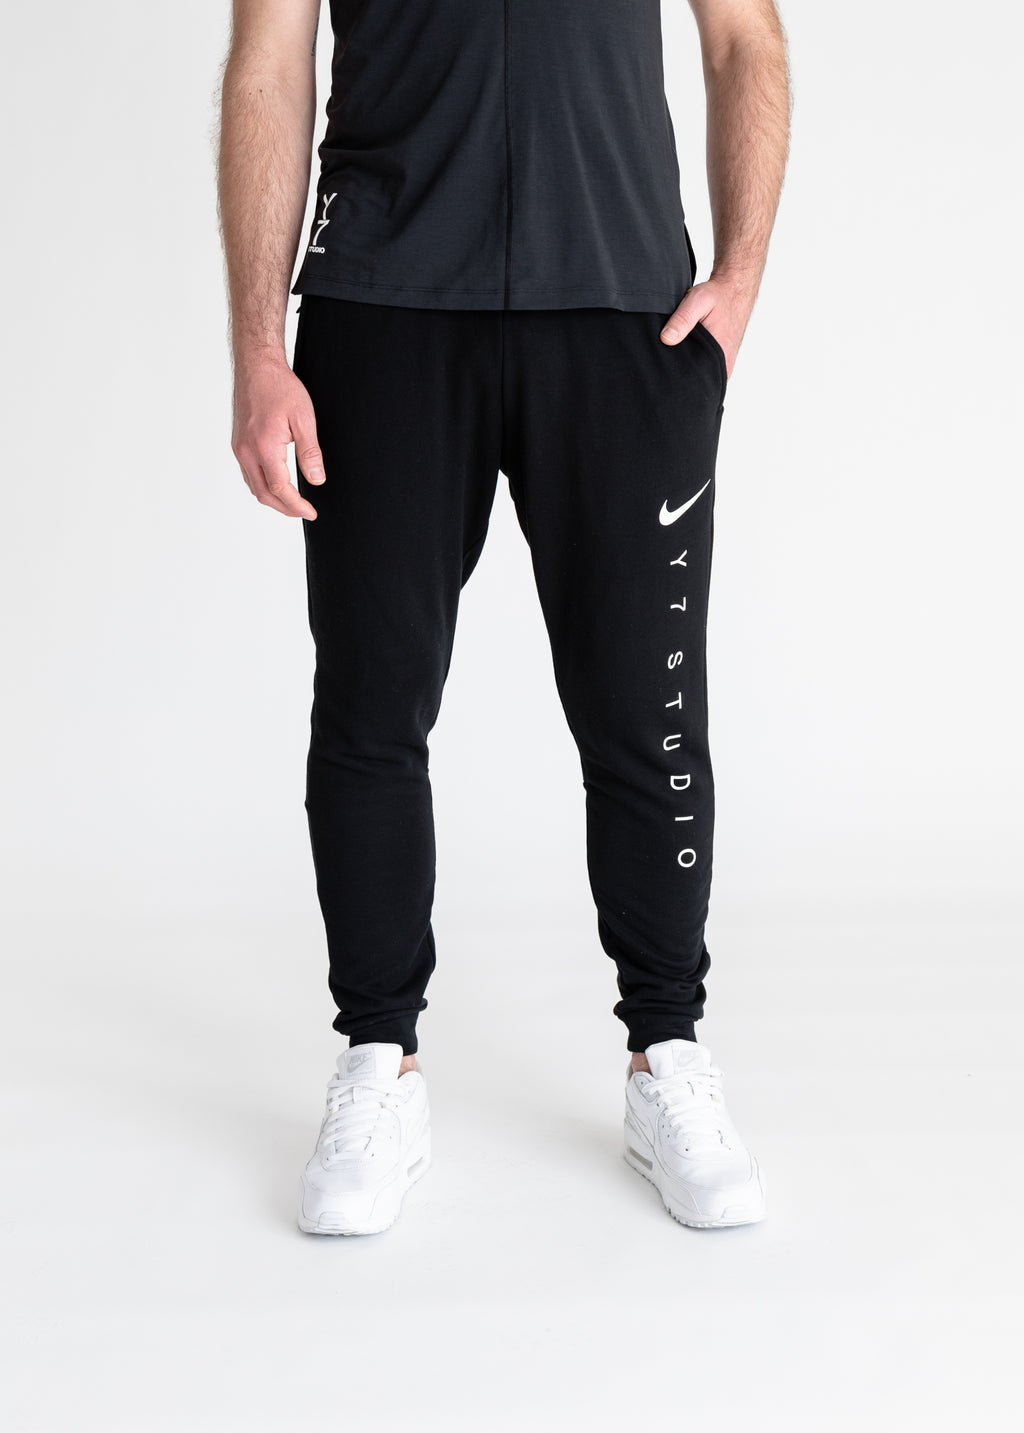 Y7 x Nike Tapered Fleece Jogger